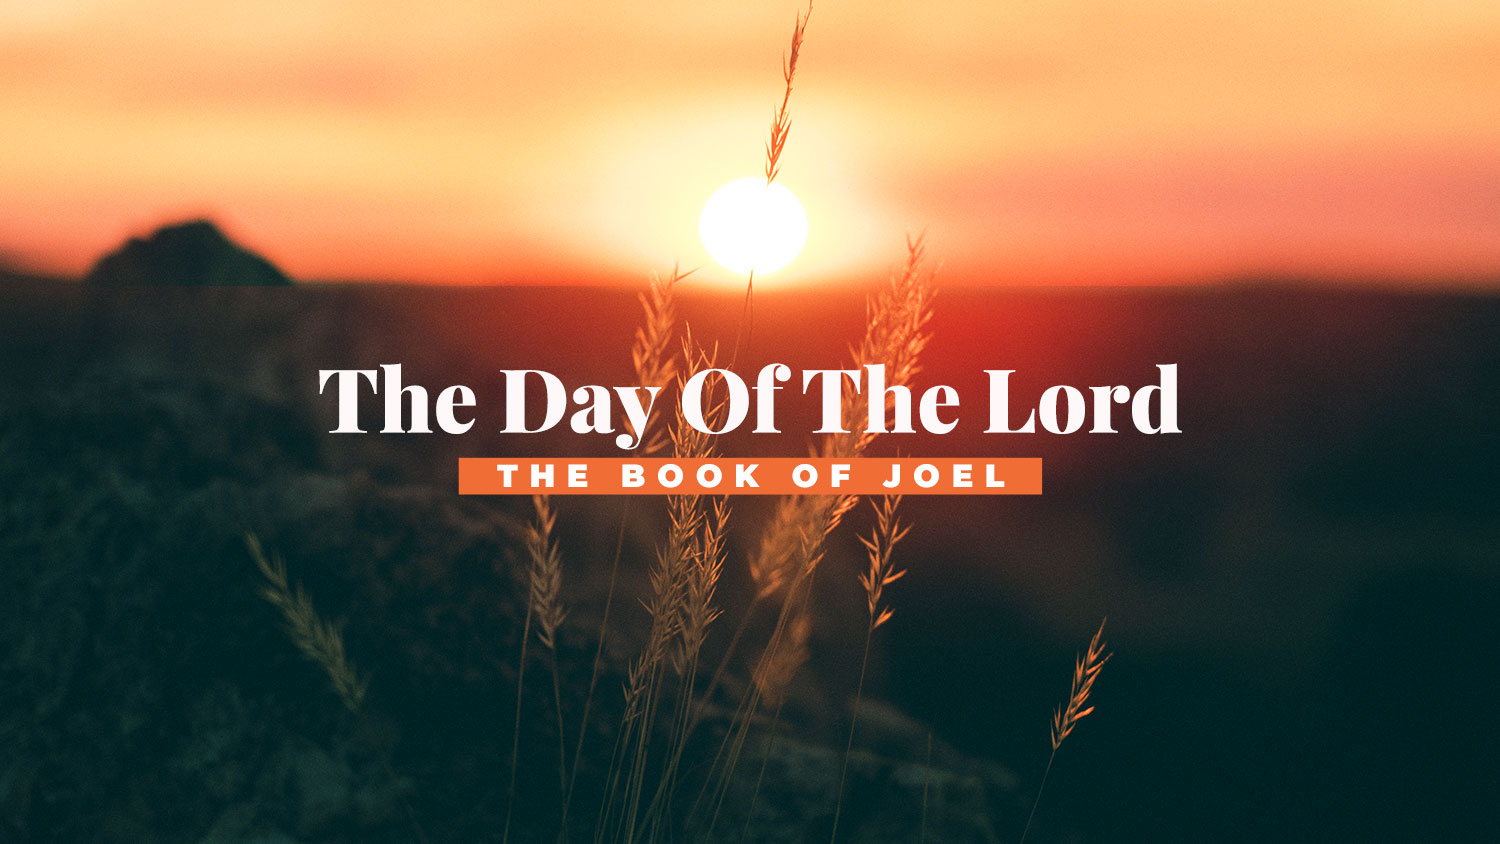 The Day Of The Lord Image